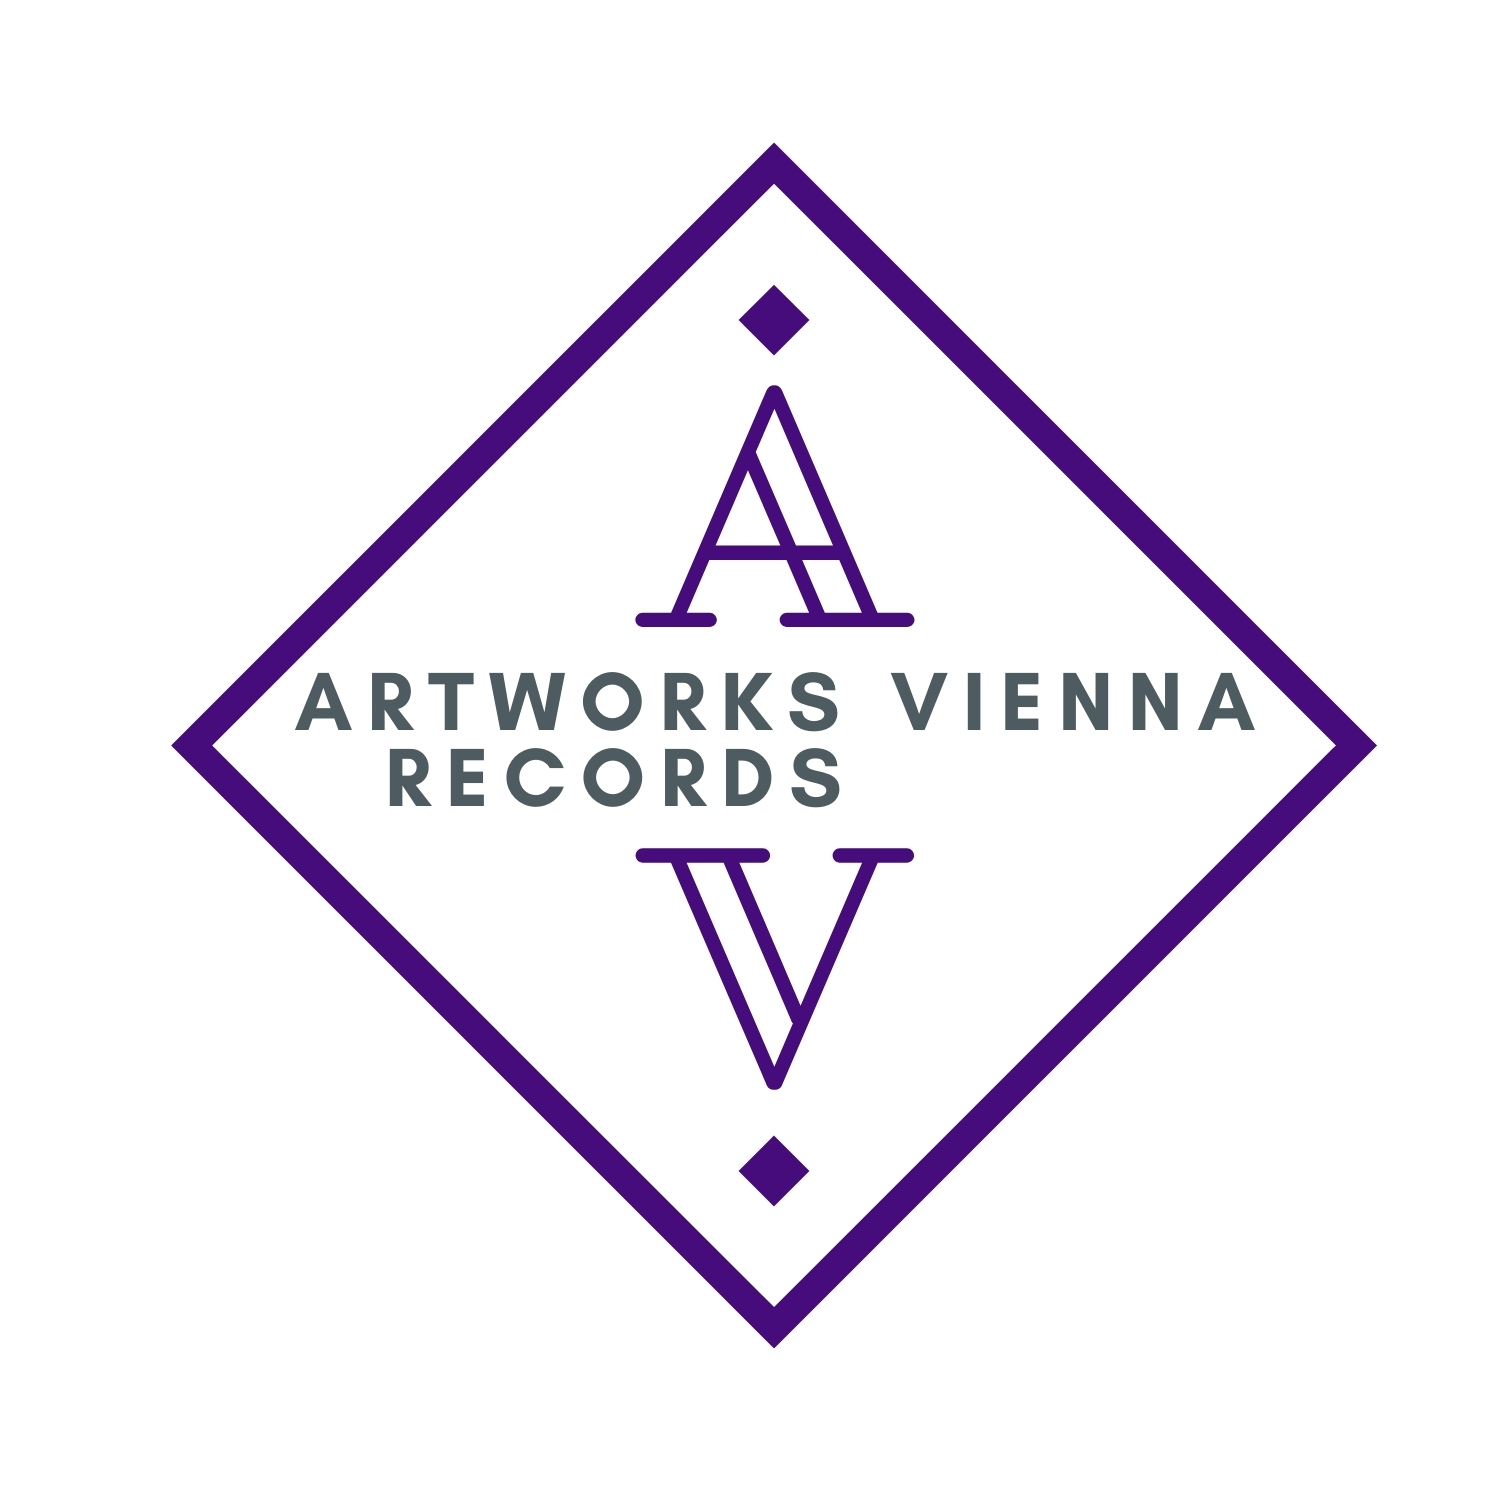 Artworks Vienna Records